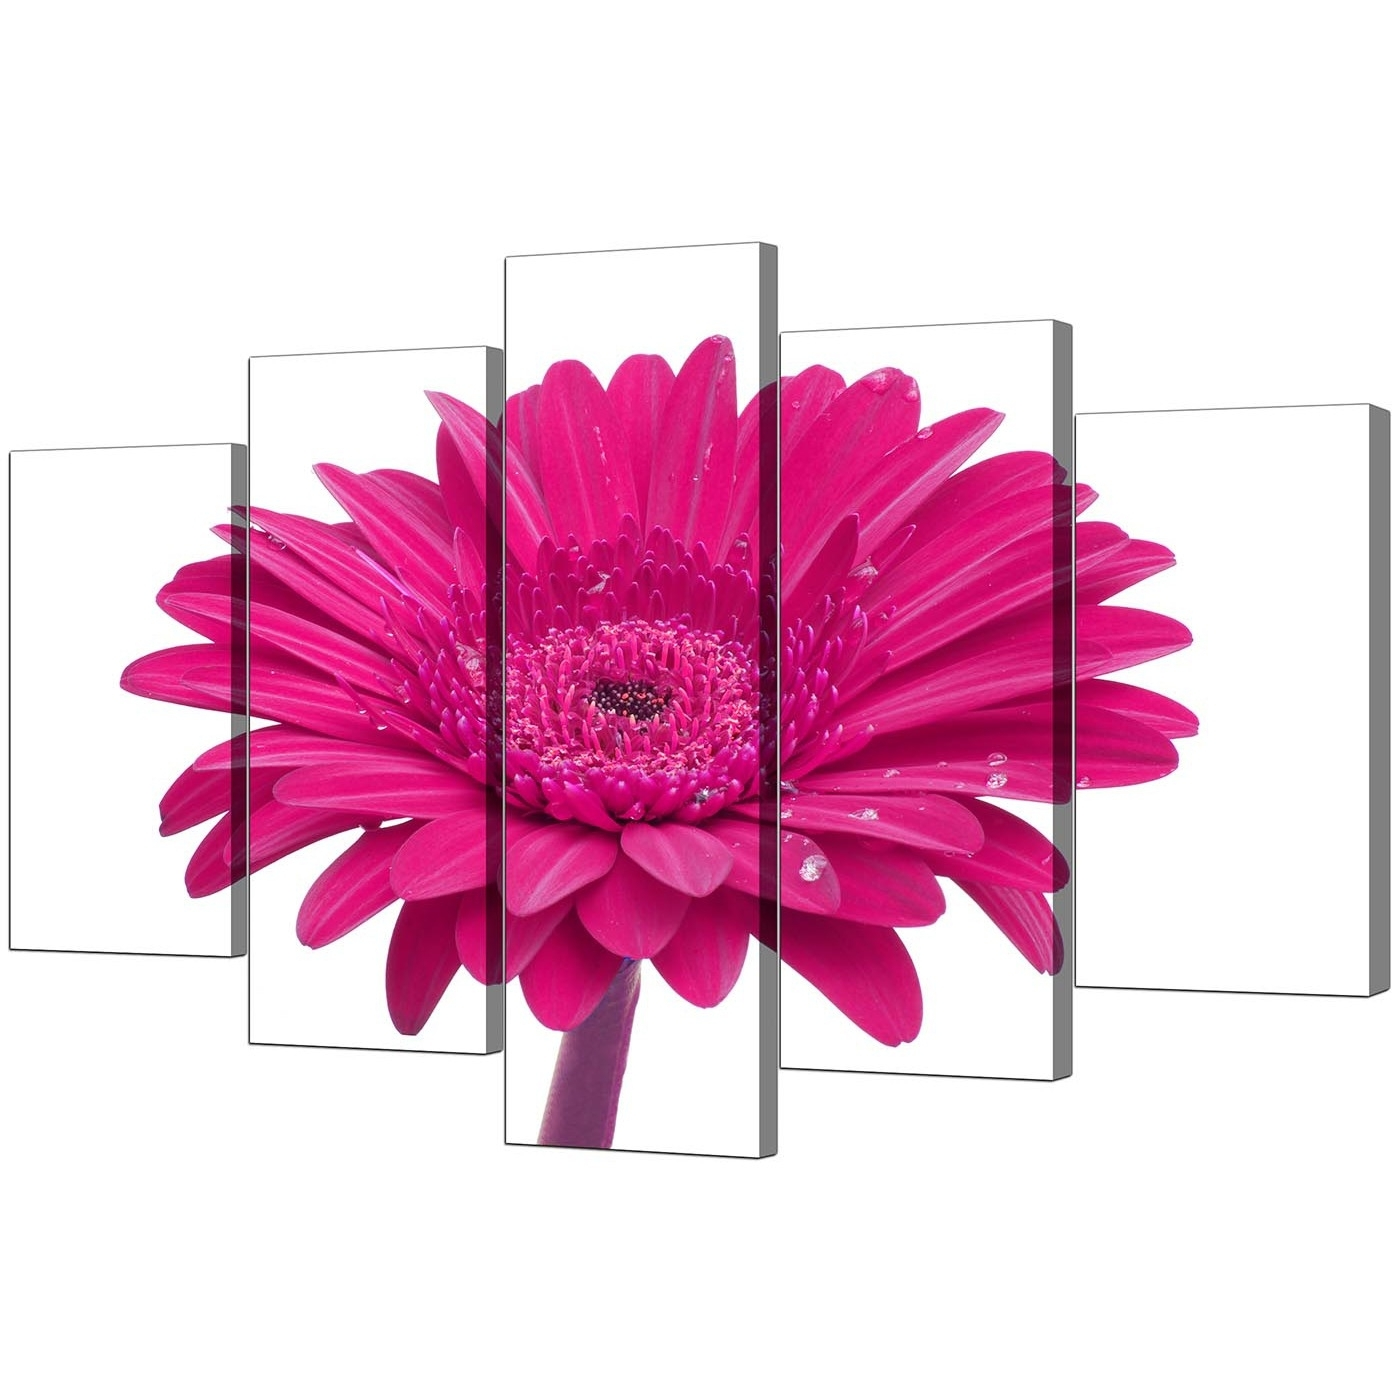 Preferred Pink Canvas Wall Art Regarding Extra Large Flower Canvas Wall Art 5 Piece In Pink (View 11 of 15)